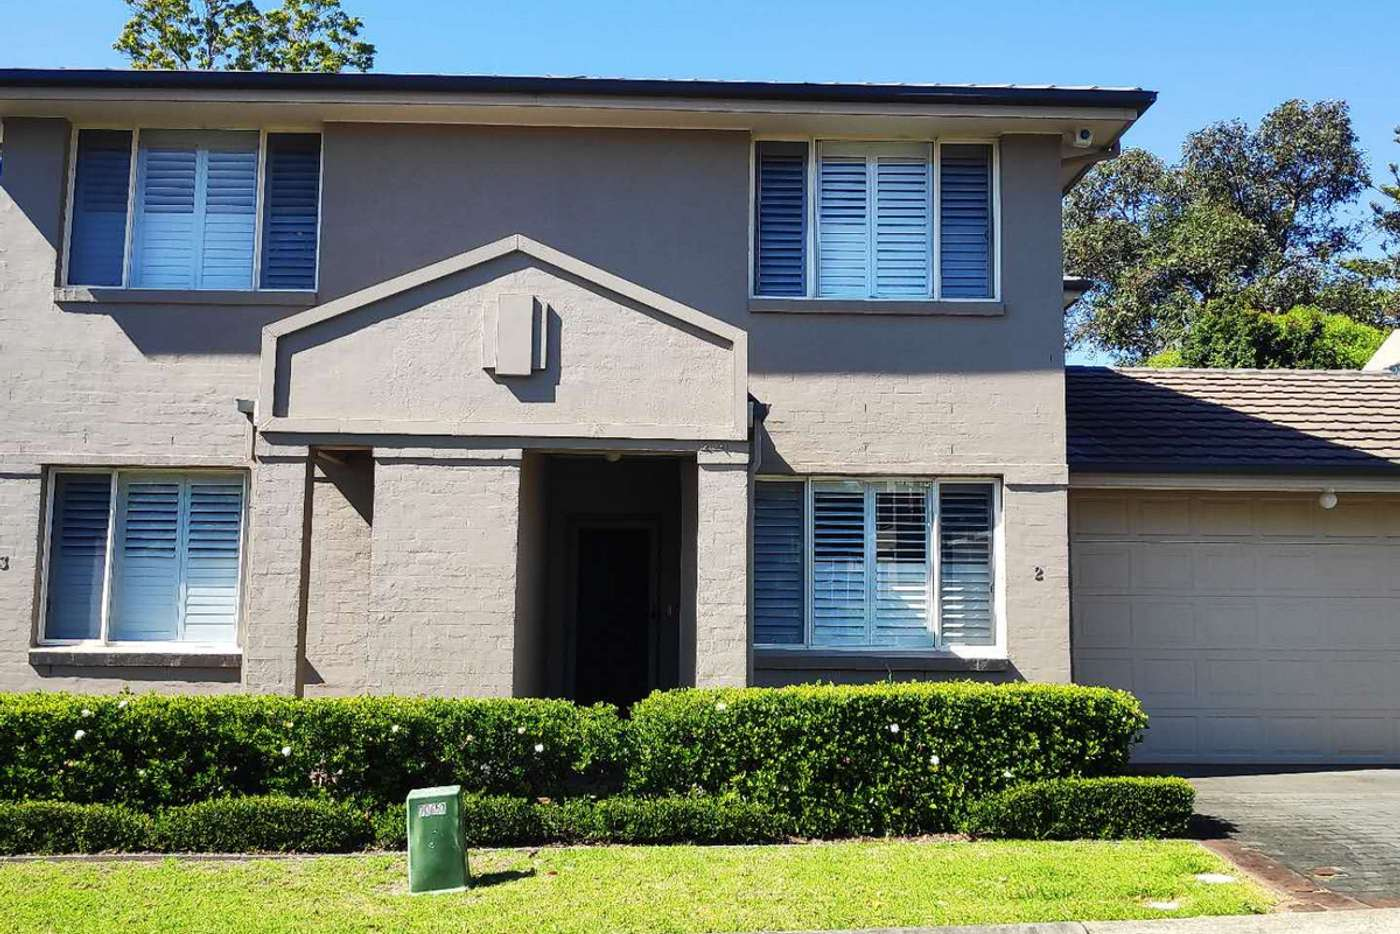 Main view of Homely townhouse listing, 2/11 Harrington Avenue, Castle Hill NSW 2154